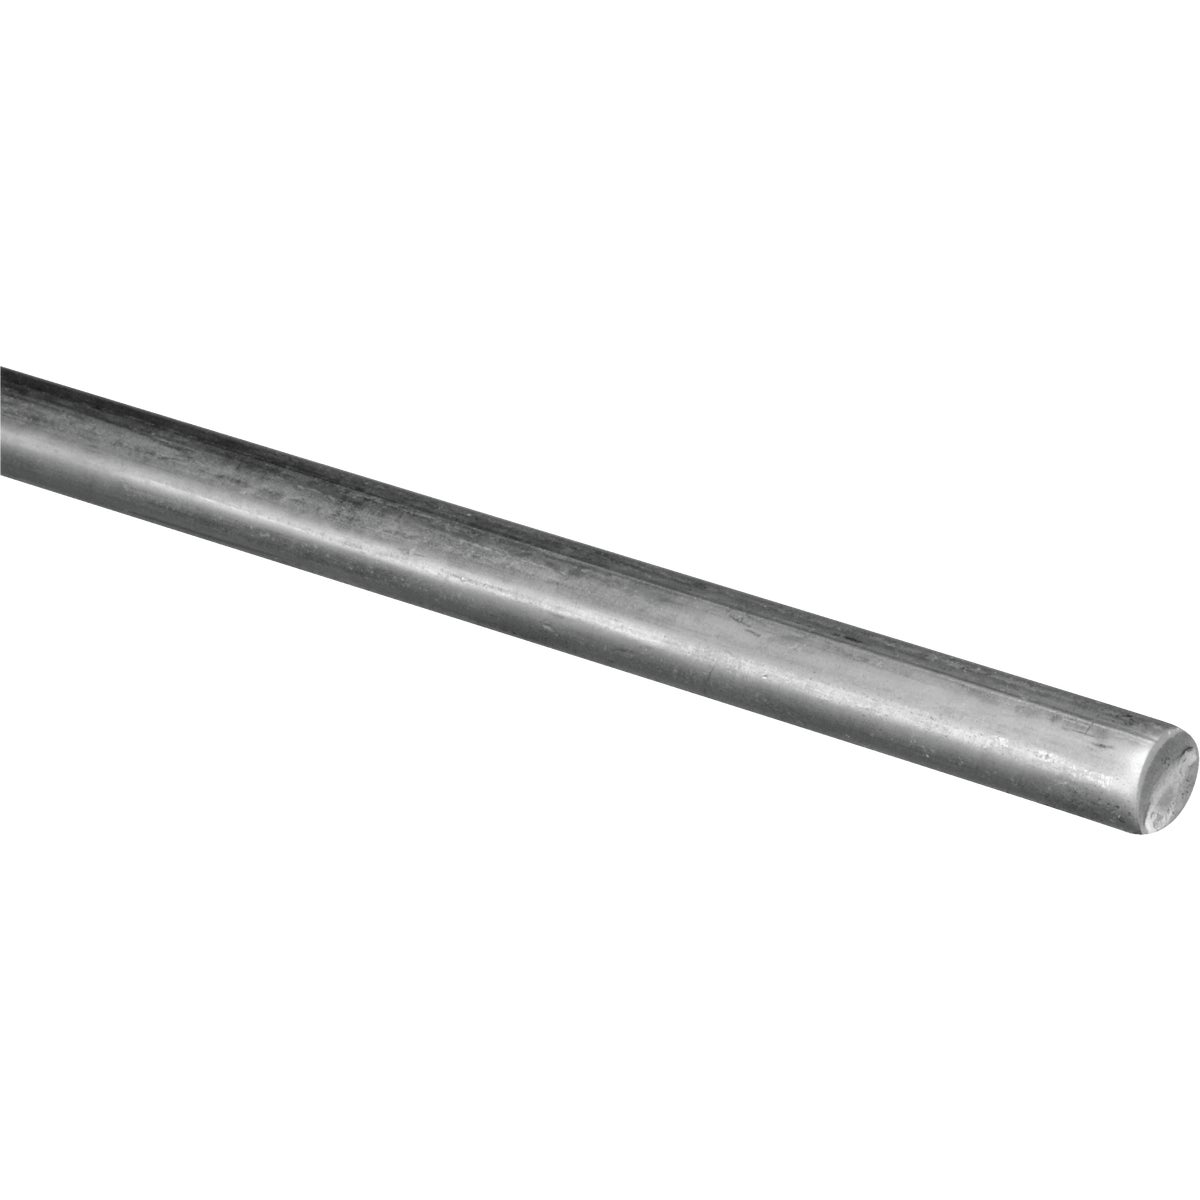 3/8X72 ZN SMOOTH ROD - N216192 by National Mfg Co